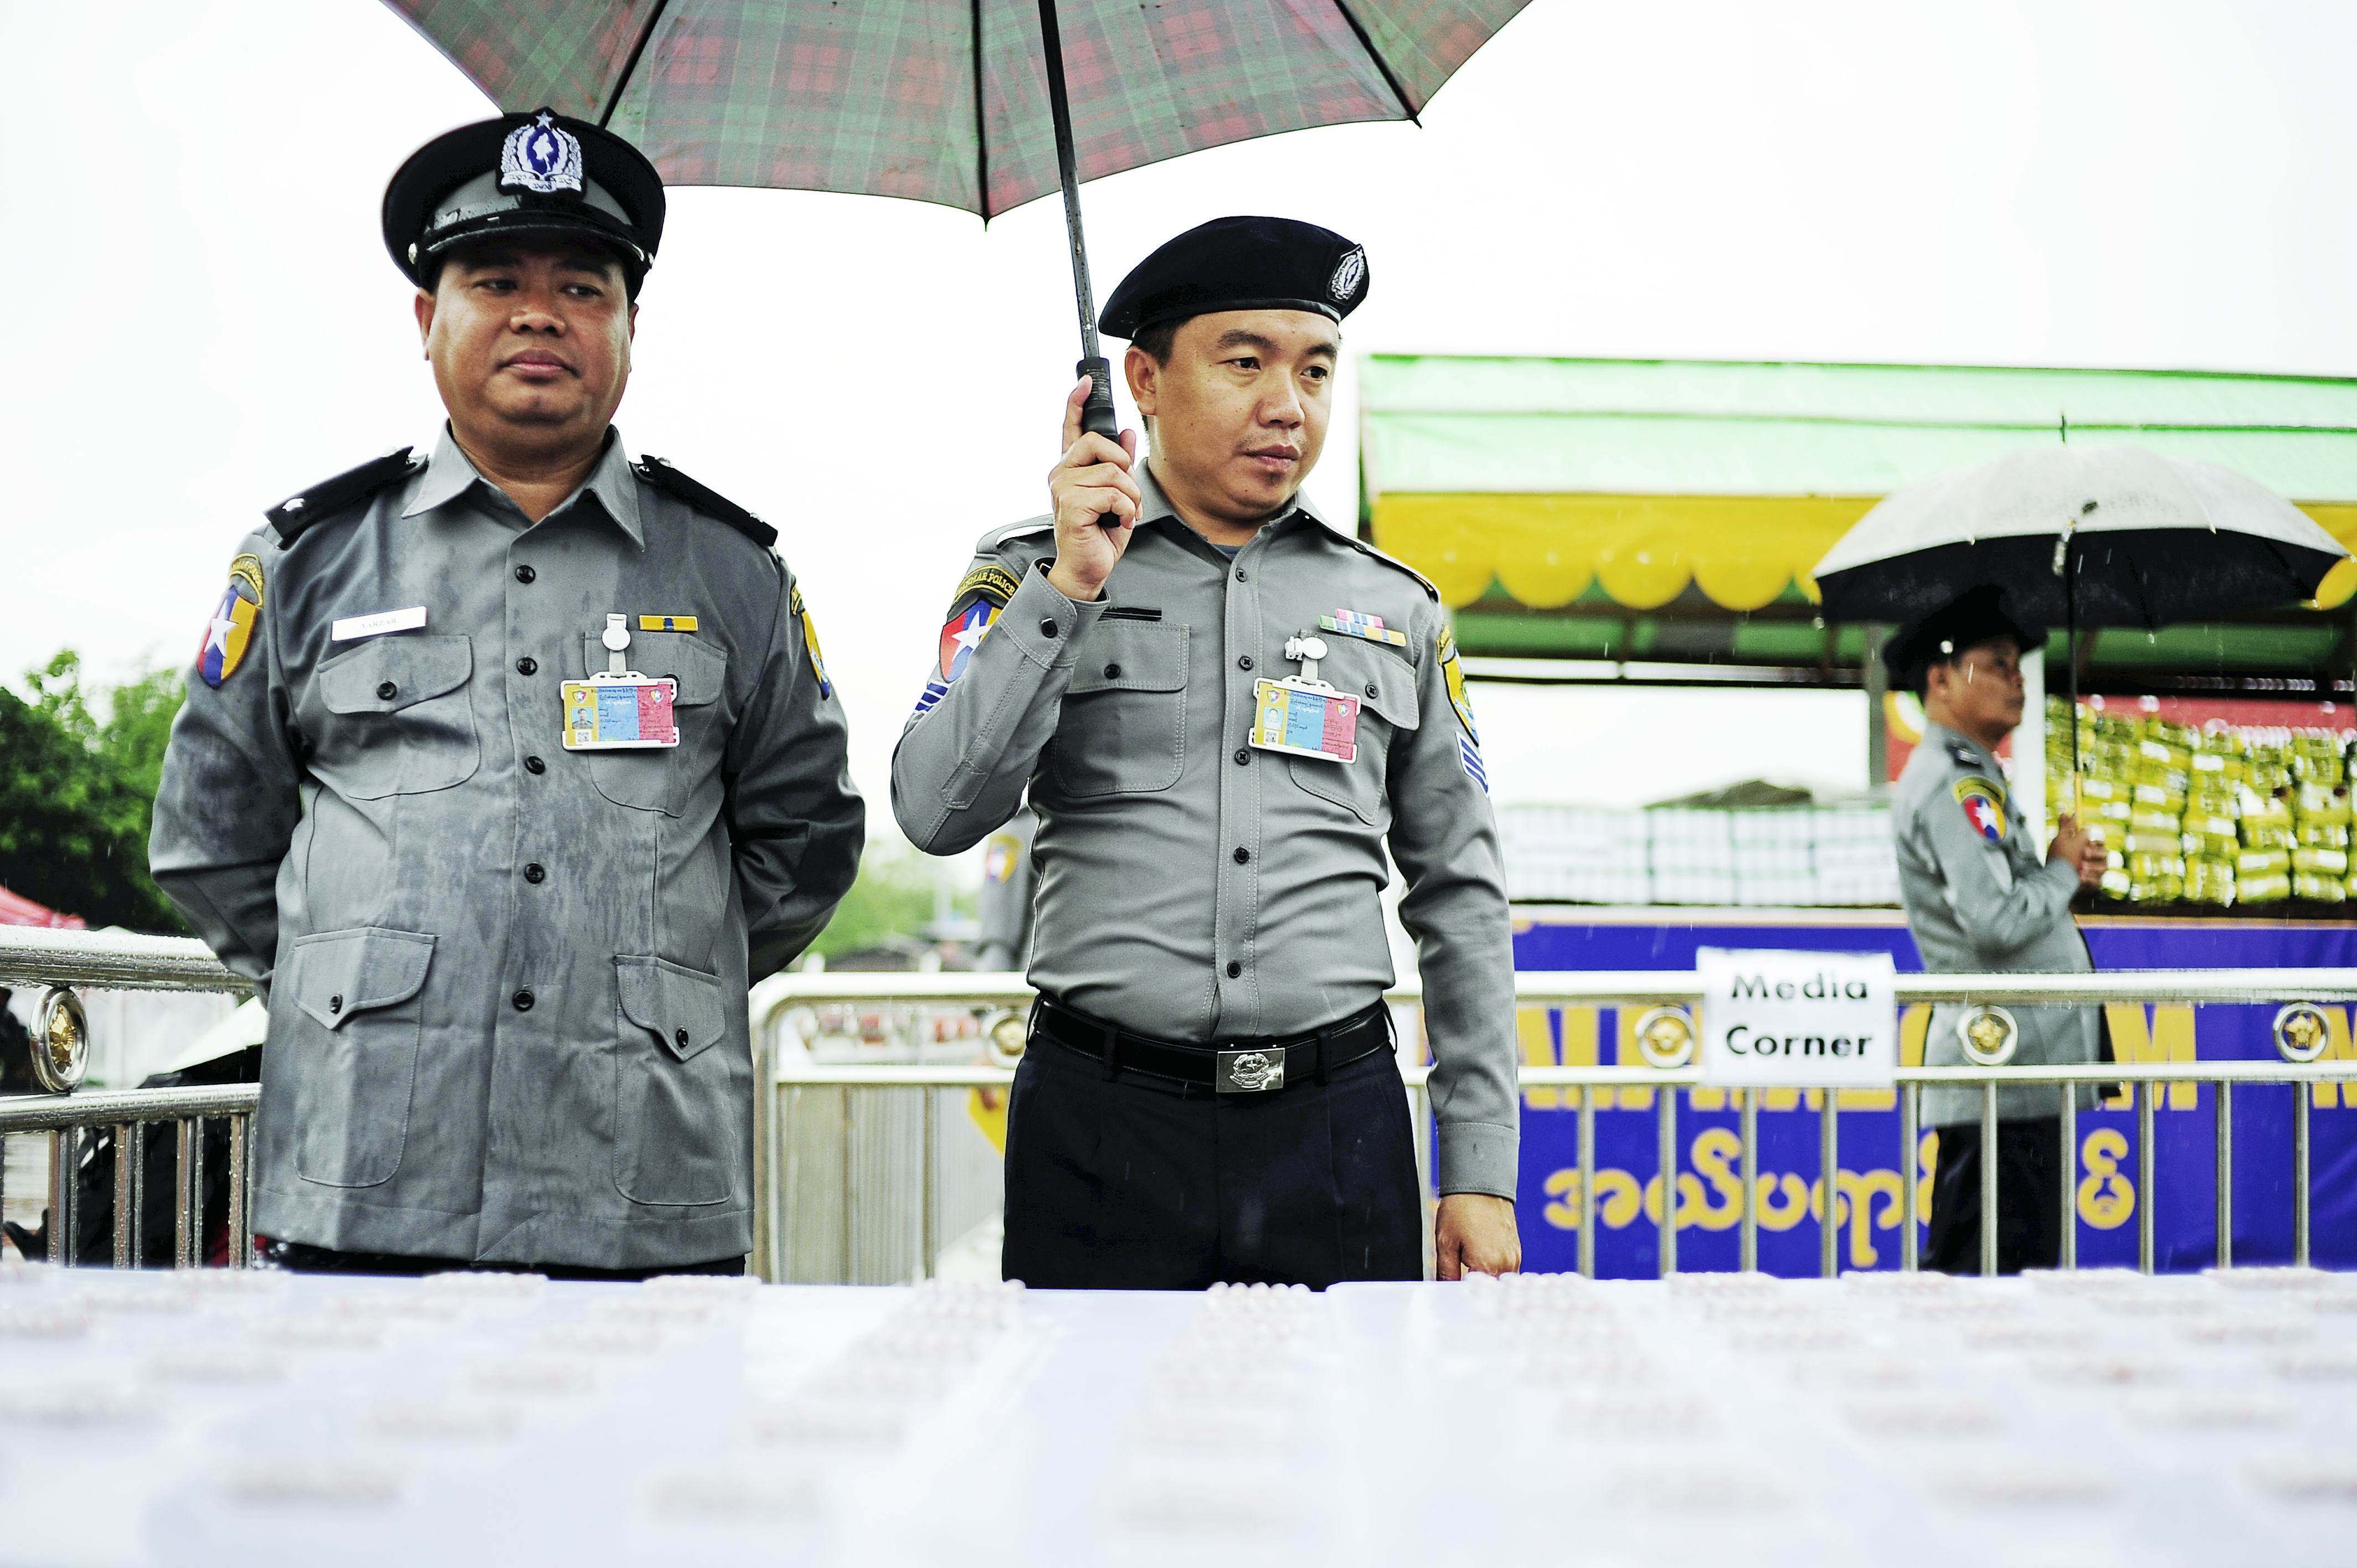 Police asked to shape-up, or ship-out | The Myanmar Times